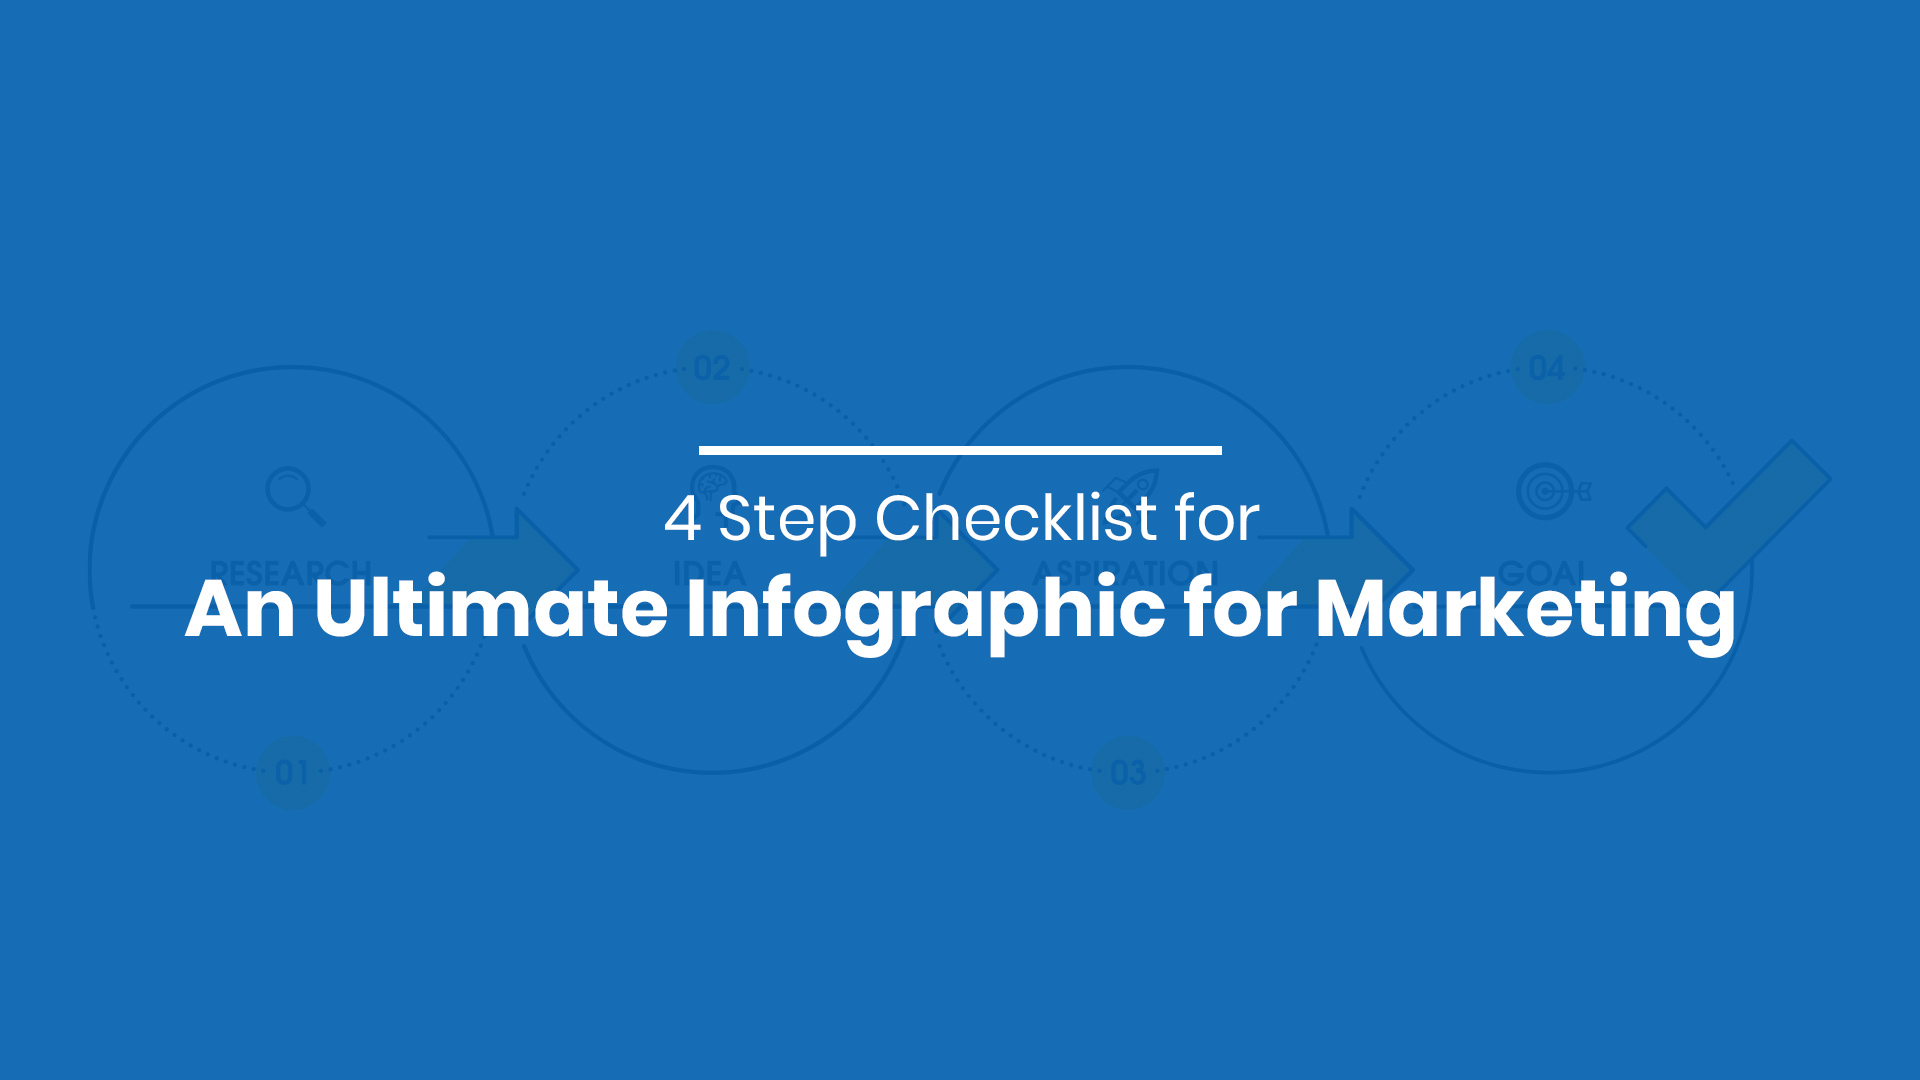 4 Step Checklist for An Ultimate Infographic for Marketing